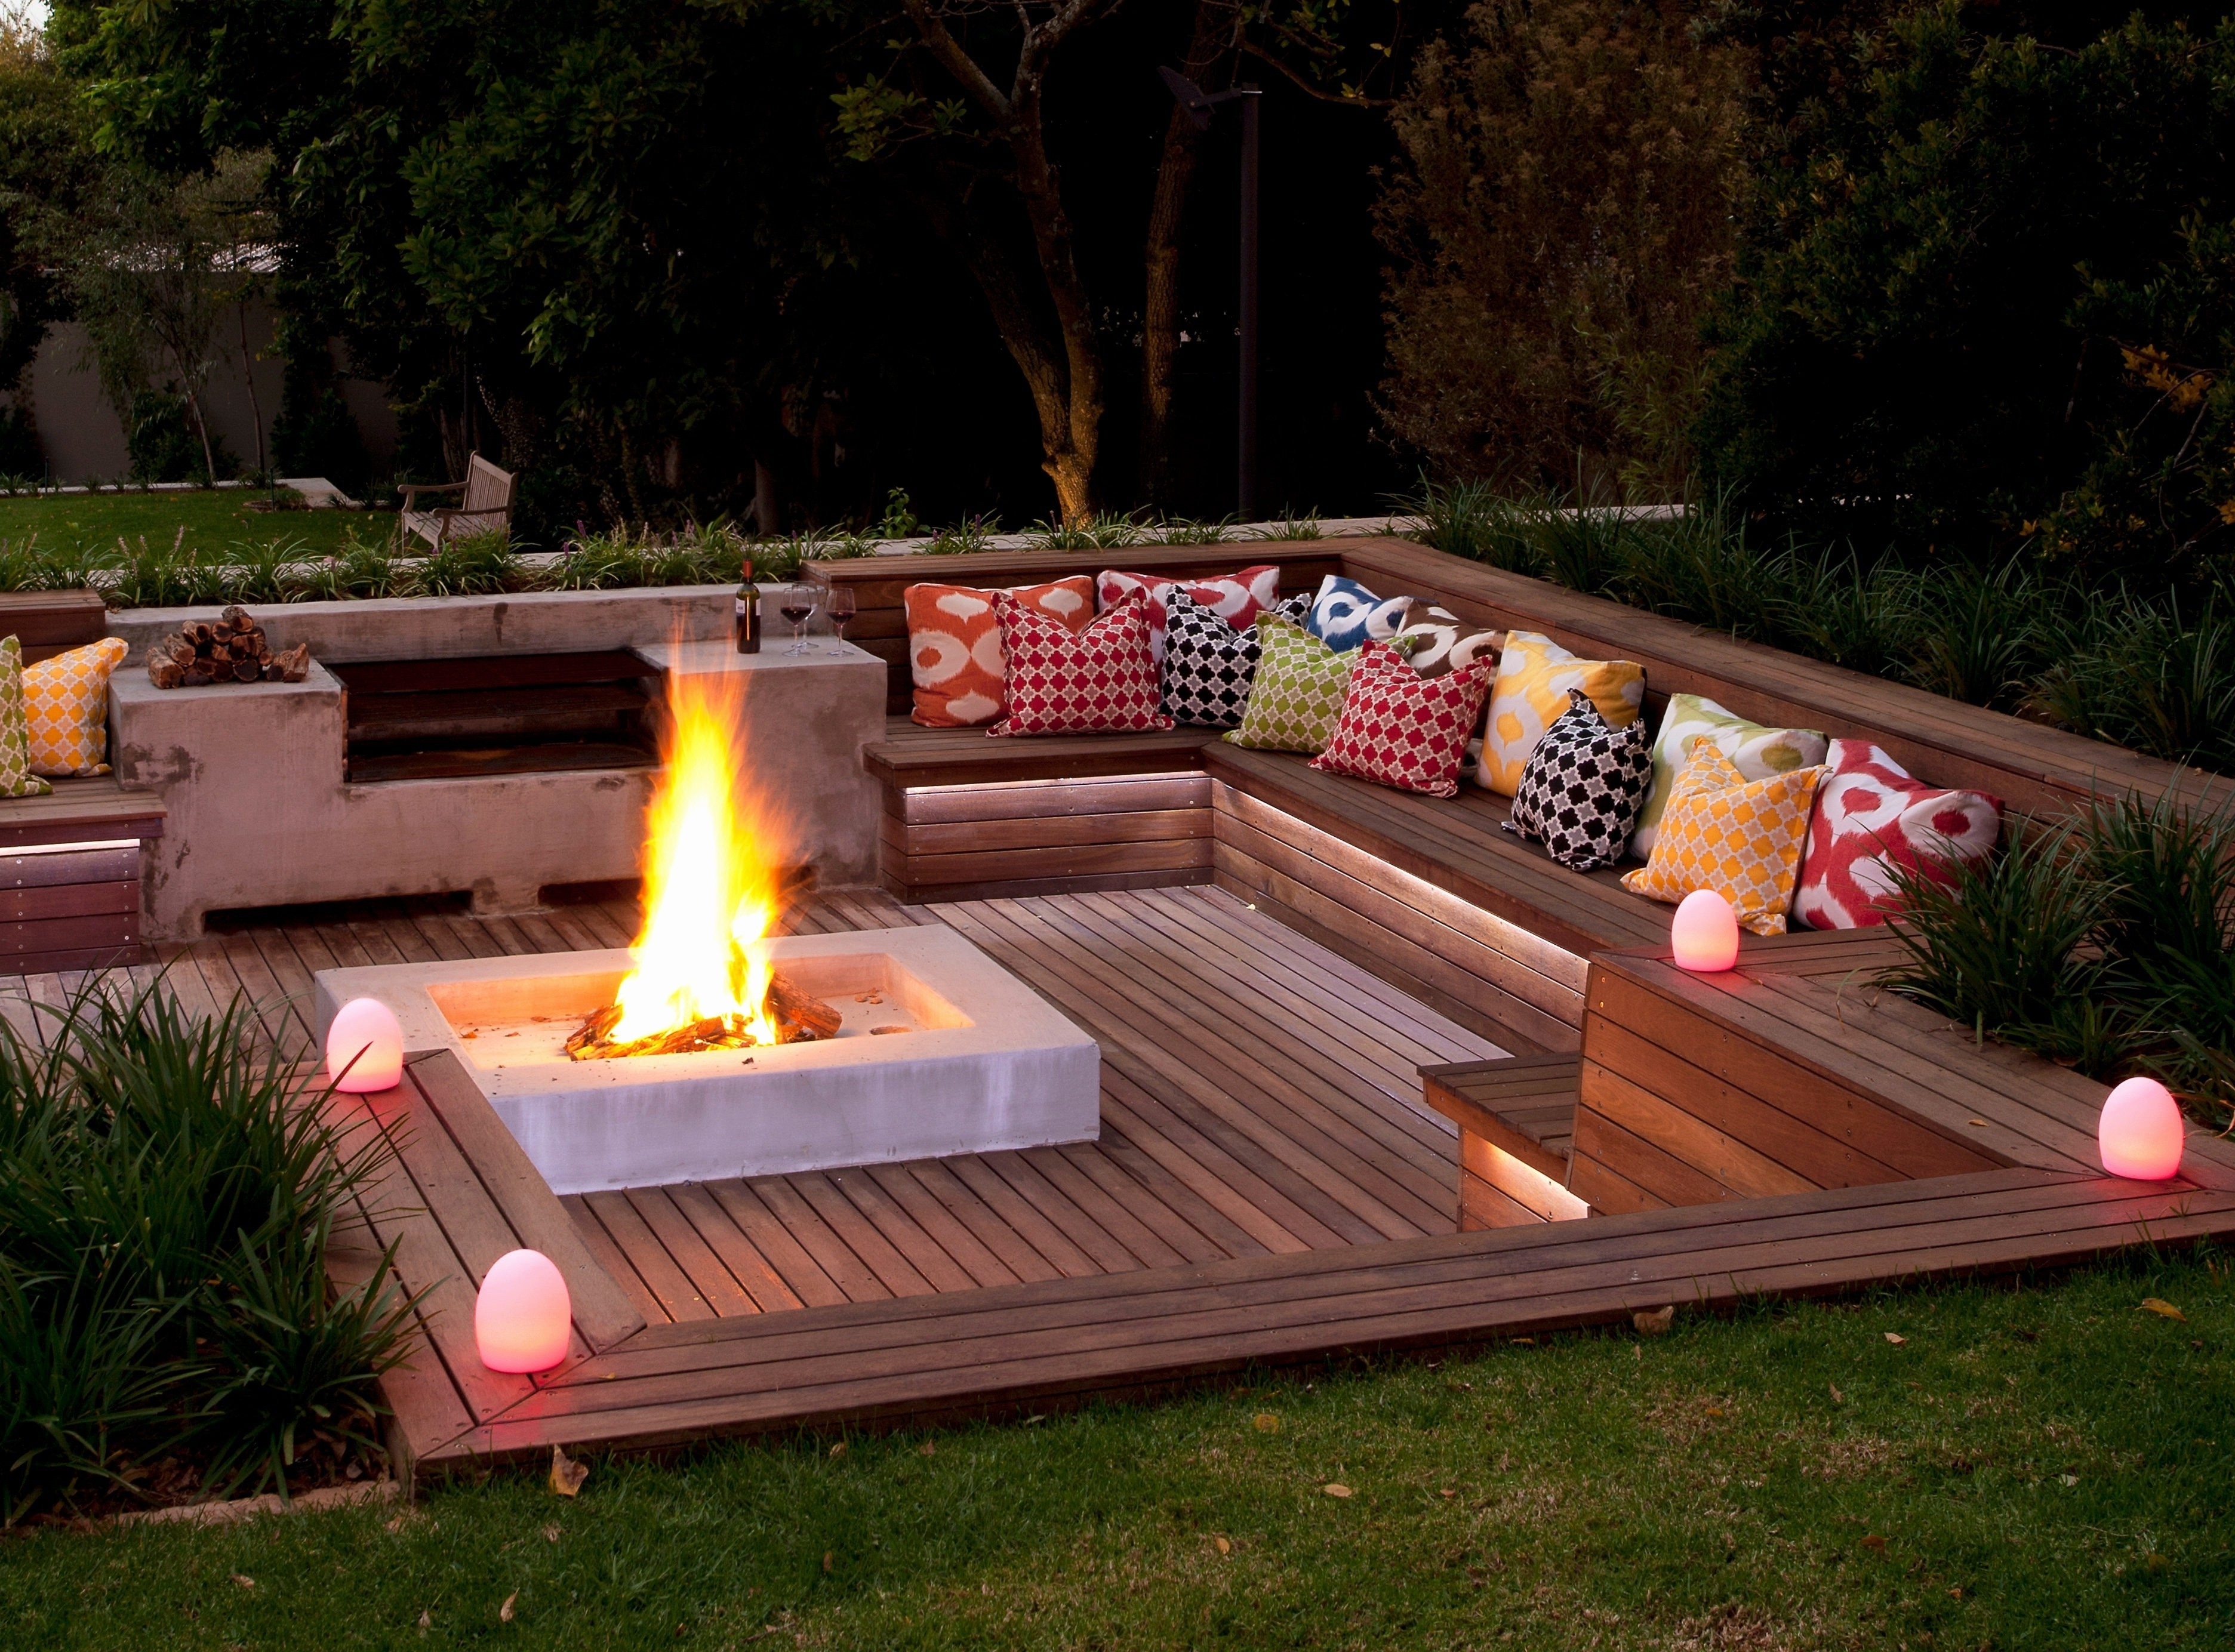 Cozy Patio With Firepit Ideas Biaf Media Home Design within size 3744 X 2768